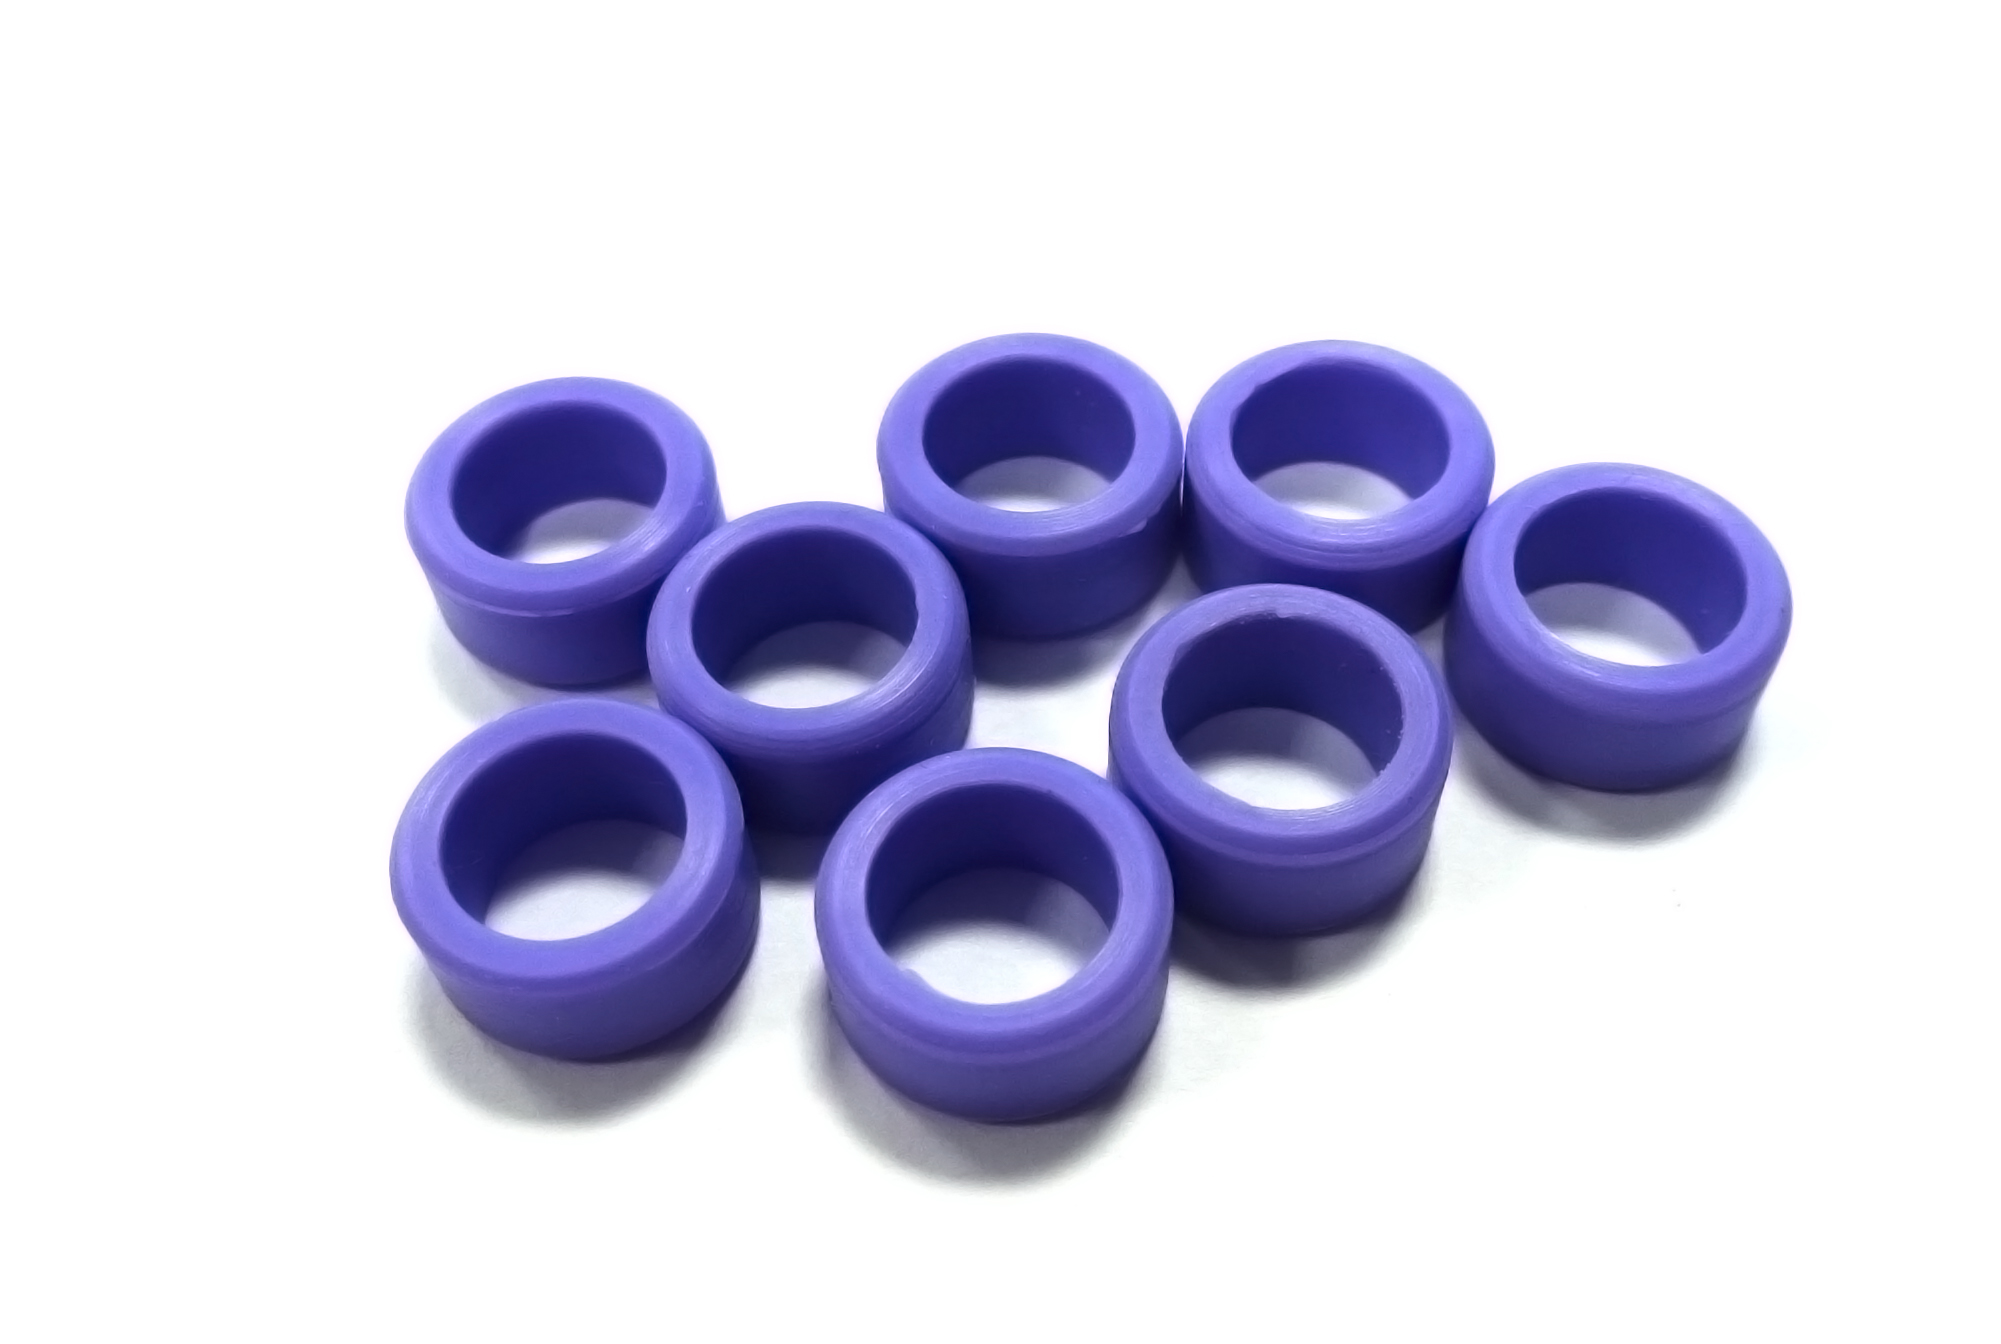 Instrument Ring - Large Lavender - 8pcs